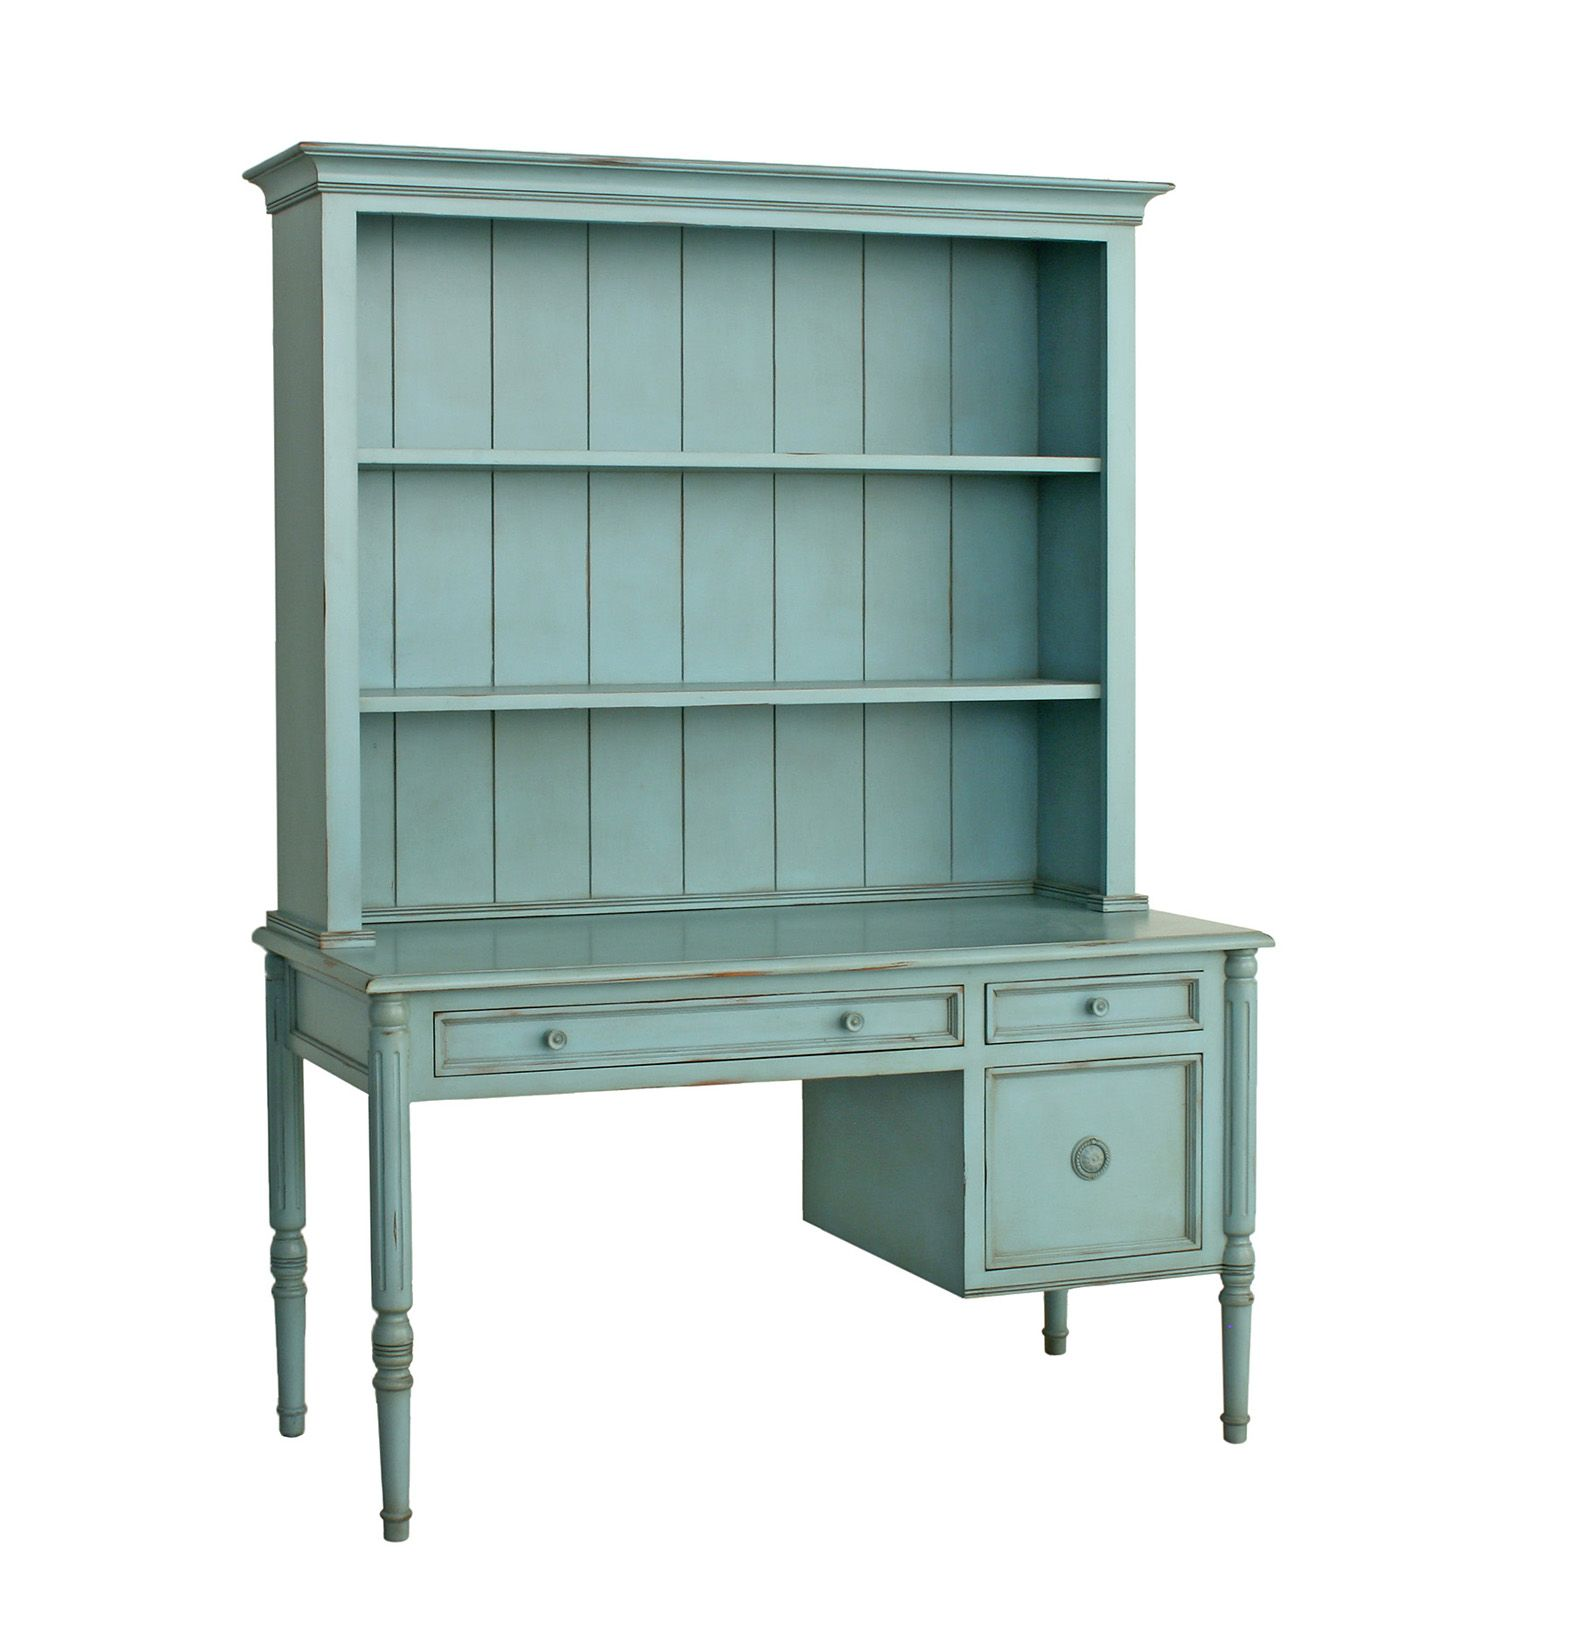 The Hampton S Furniture Collection Southampton Writing Desk With Hutch Standard Painted Br Hardware Robin Egg Blue